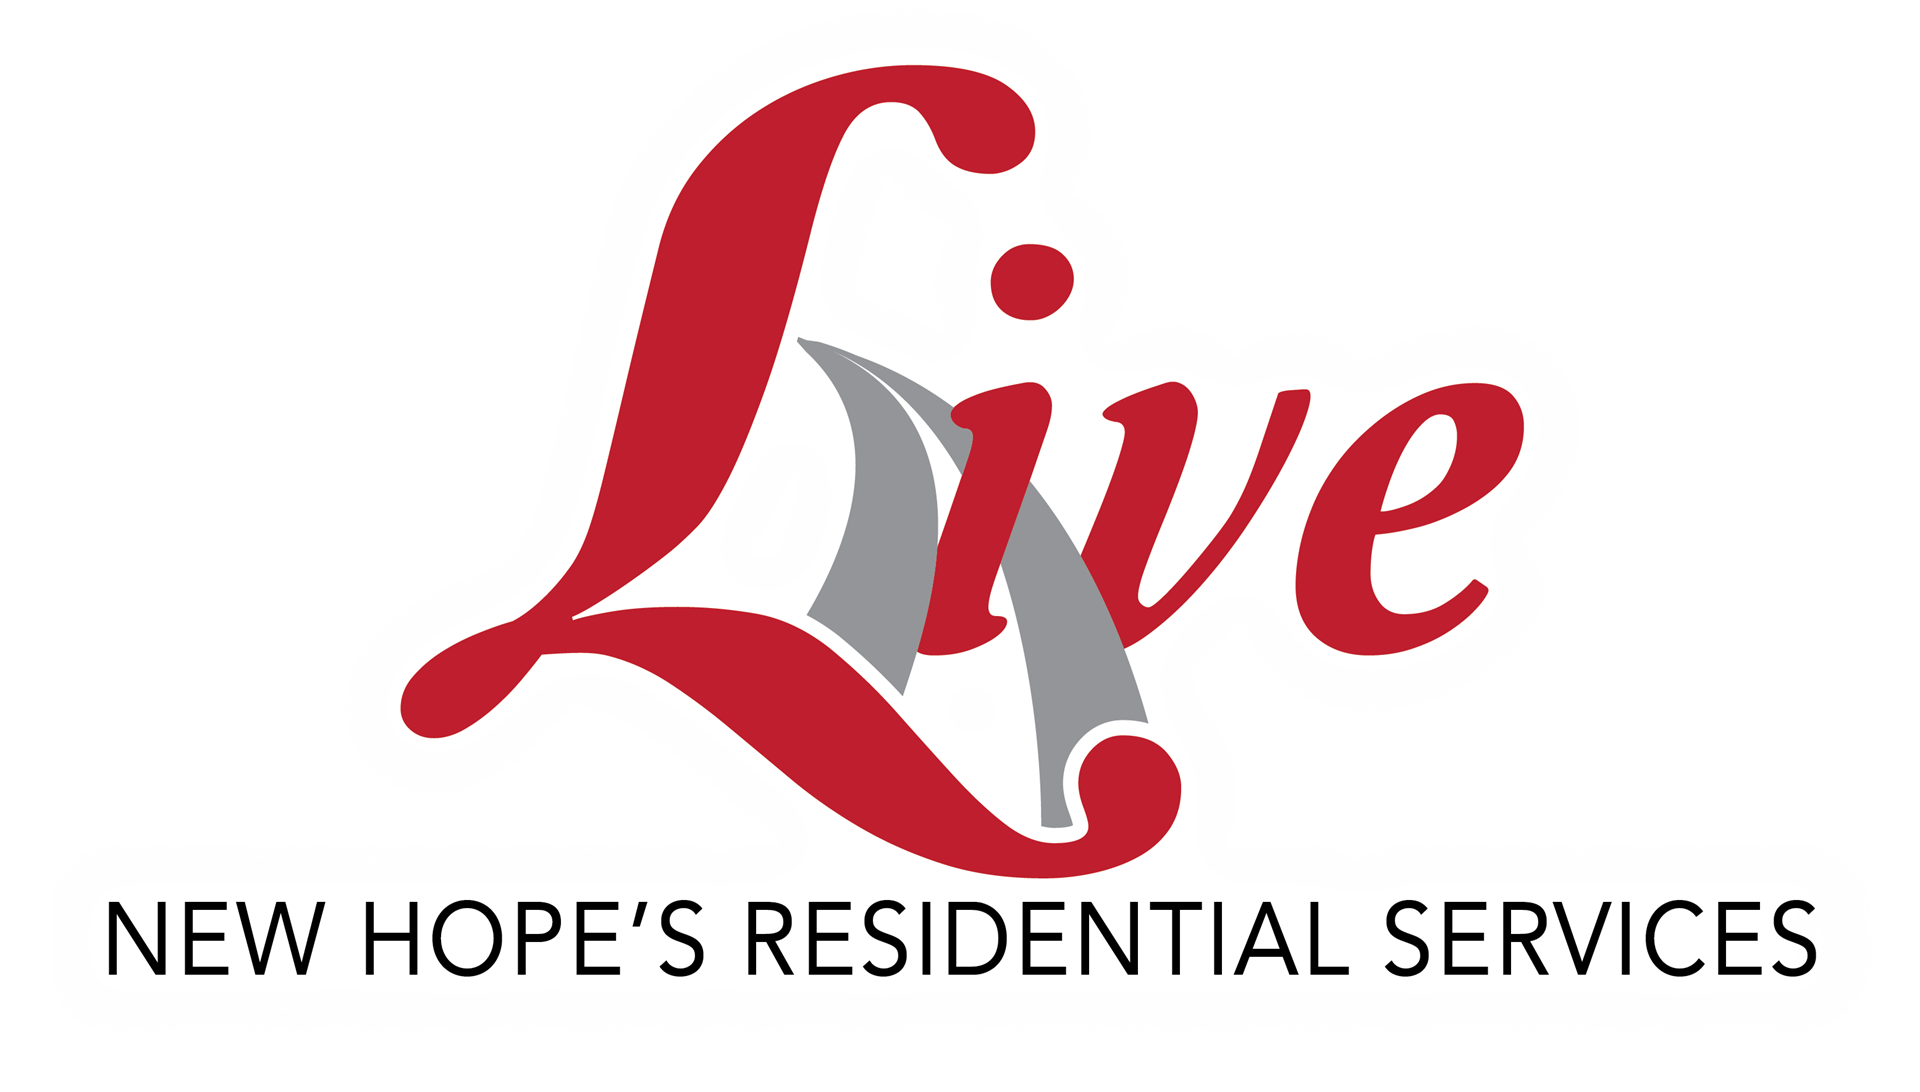 New Hope Center Inc - Residential Services